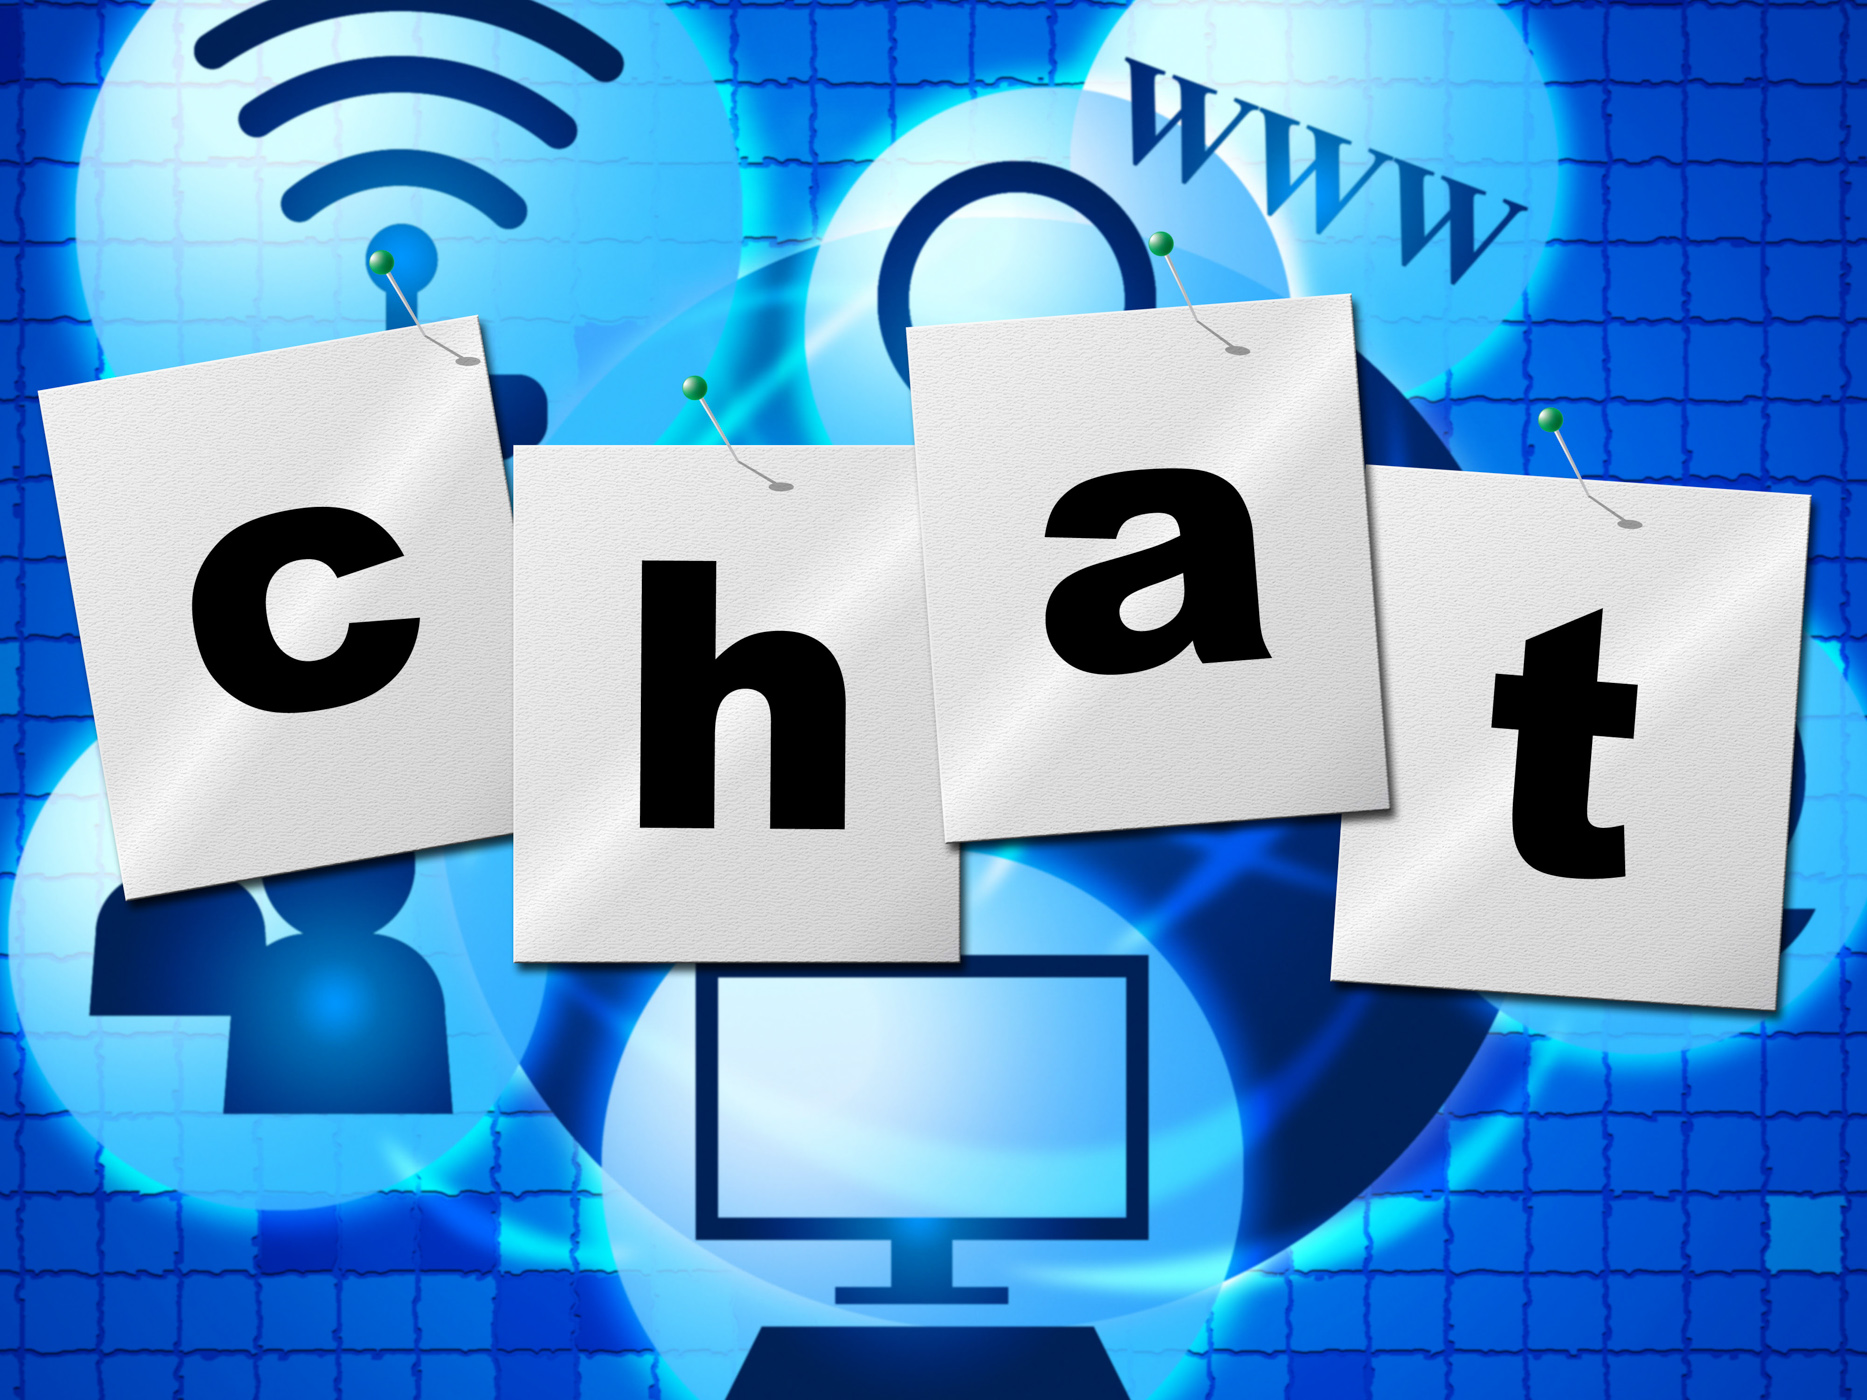 Chatting Chat Represents Telephone Typing And Communicate, Call, Chat, Chatting, Communicate, HQ Photo